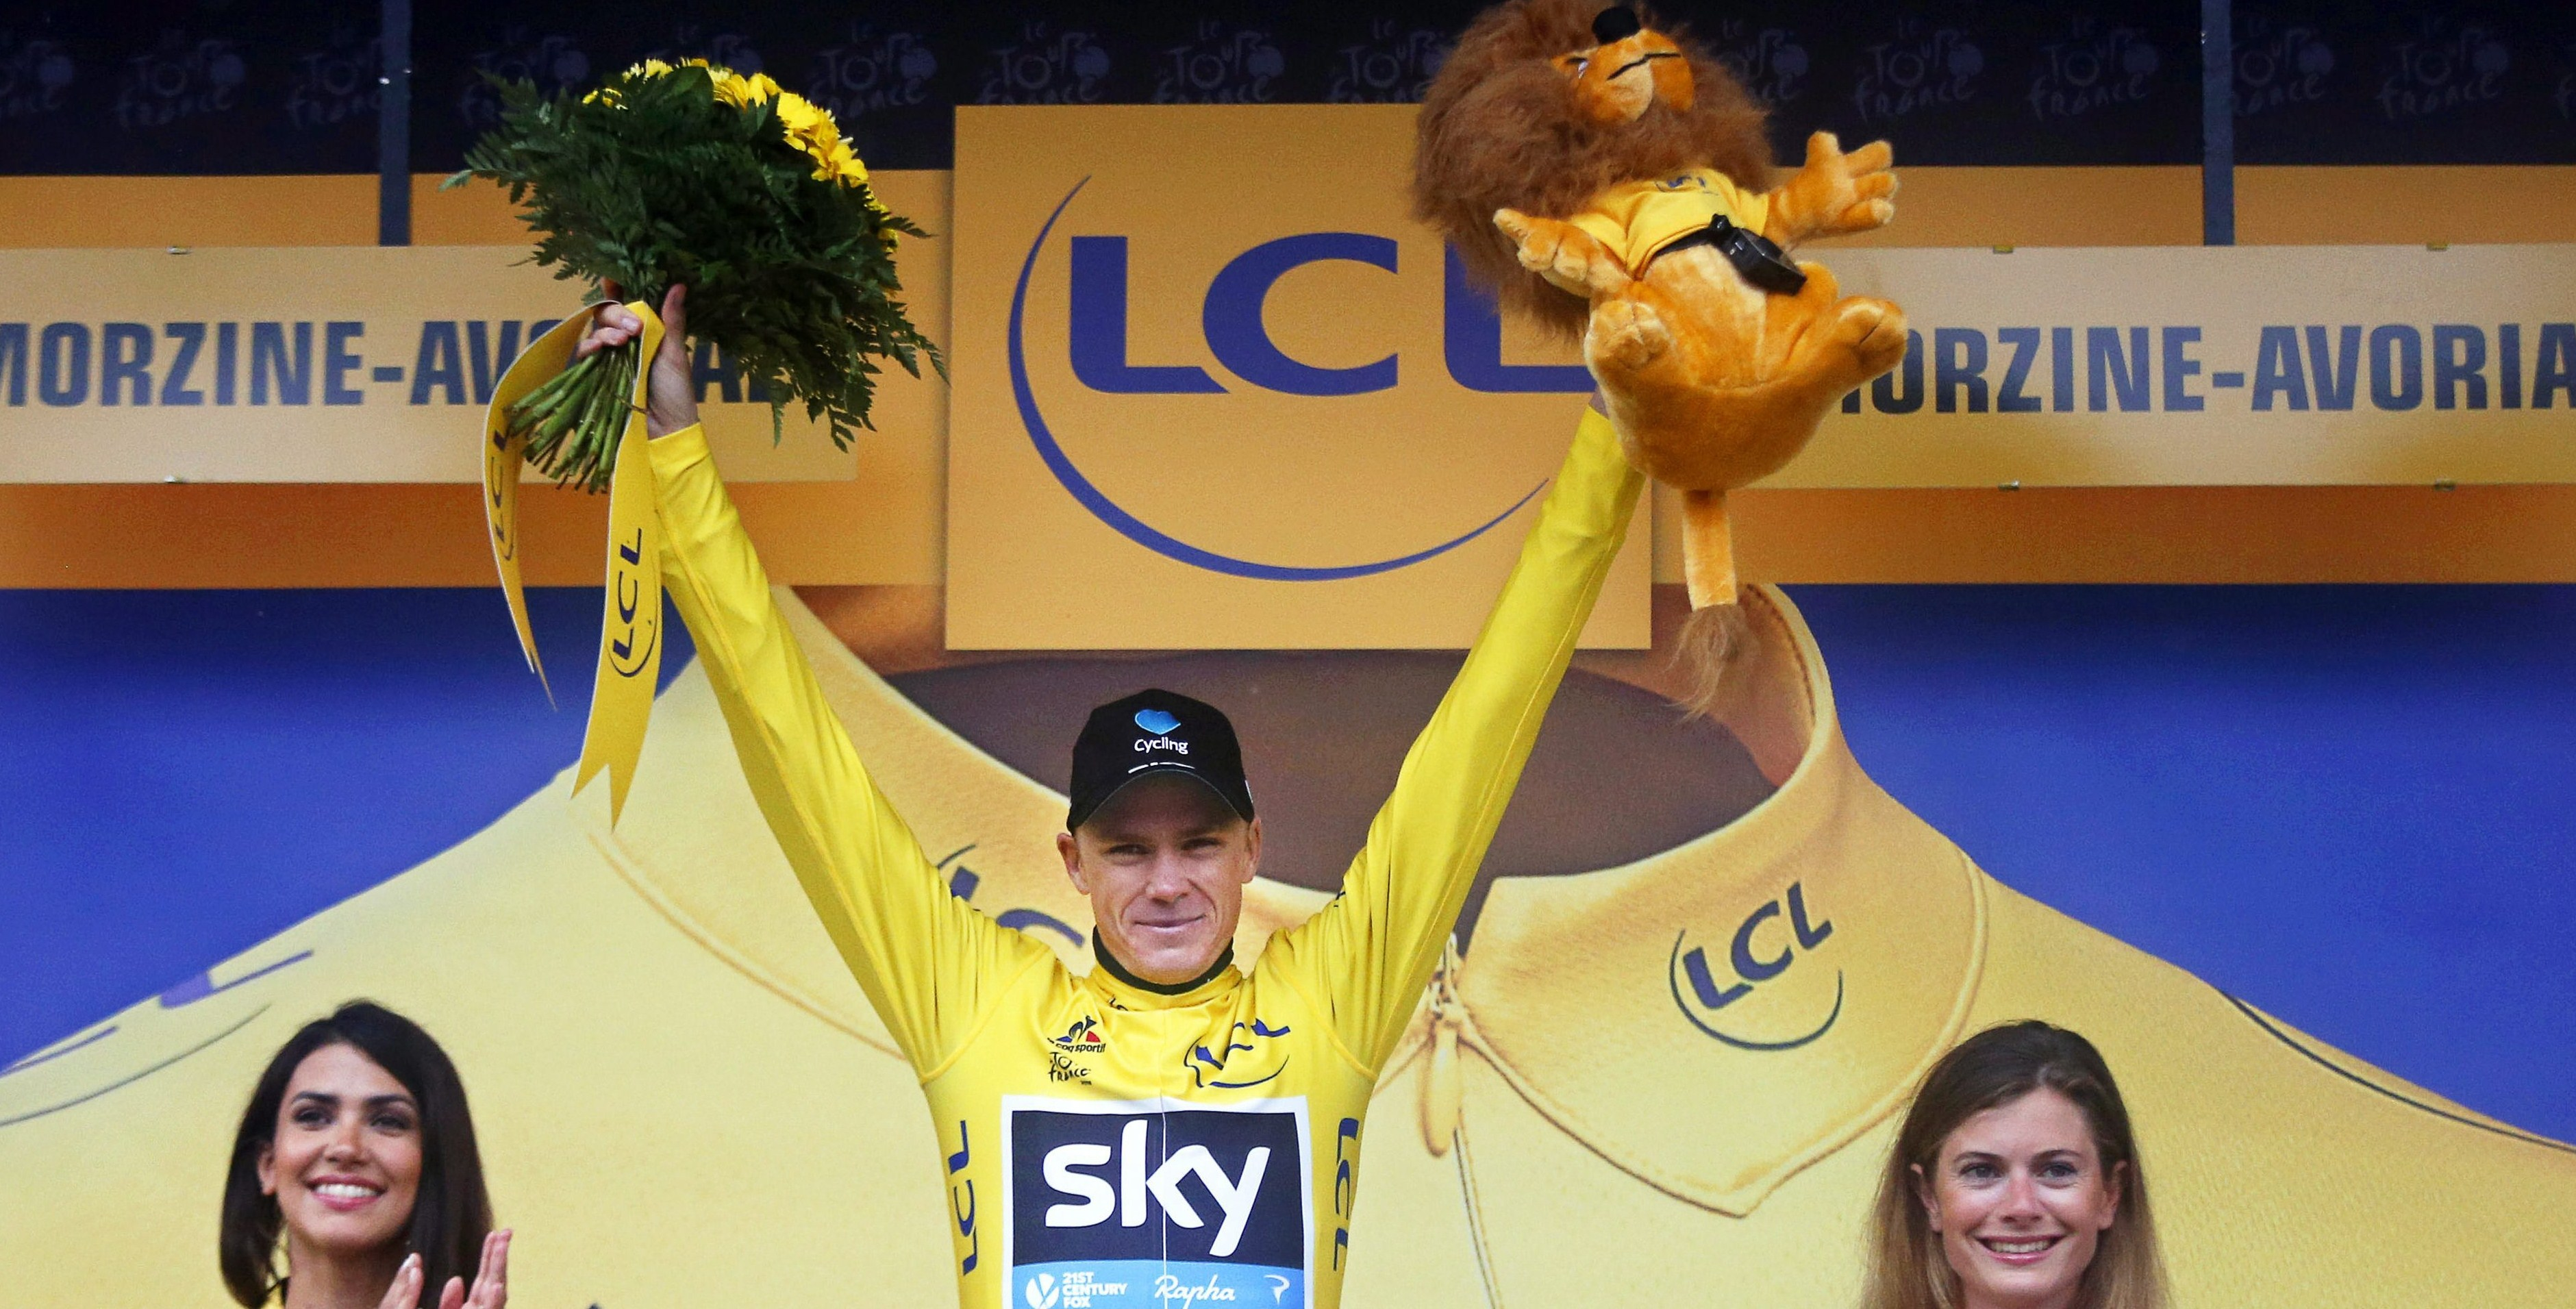 . Morzine-avoriaz (France), 23/07/2016.- British rider Christopher Froome (C) of Team Sky celebrates on the podium after retaining the overall leader's yellow jersey following the 20th stage of the 103rd edition of the Tour de France cycling race over 146.5km between Megeve and Morzine-Avoriaz, France, 23 July 2016. (Ciclismo, Francia) EFE/EPA/KIM LUDBROOK